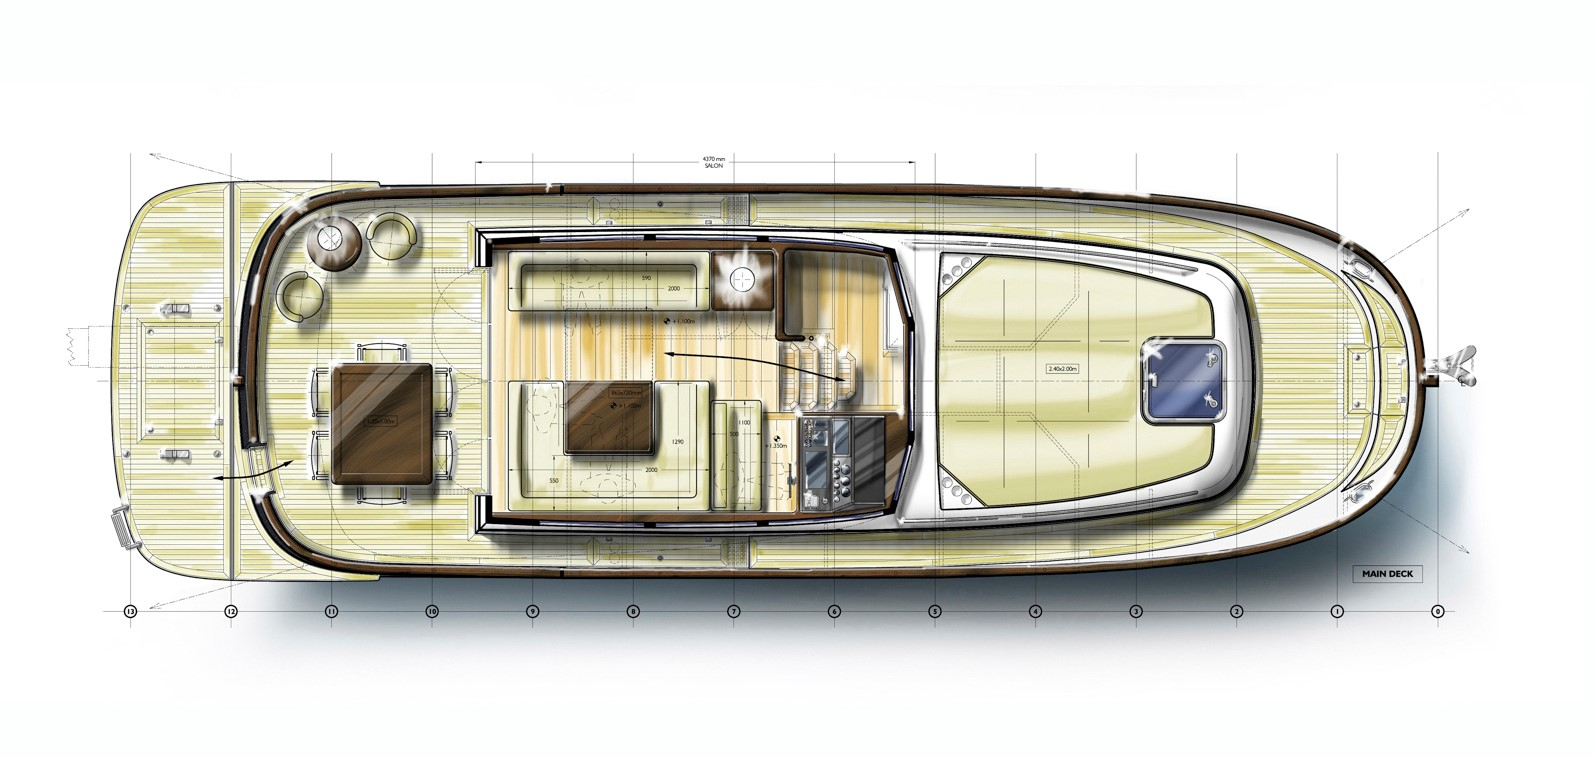 Minorca Islander 42 Flybridge - main deck layout